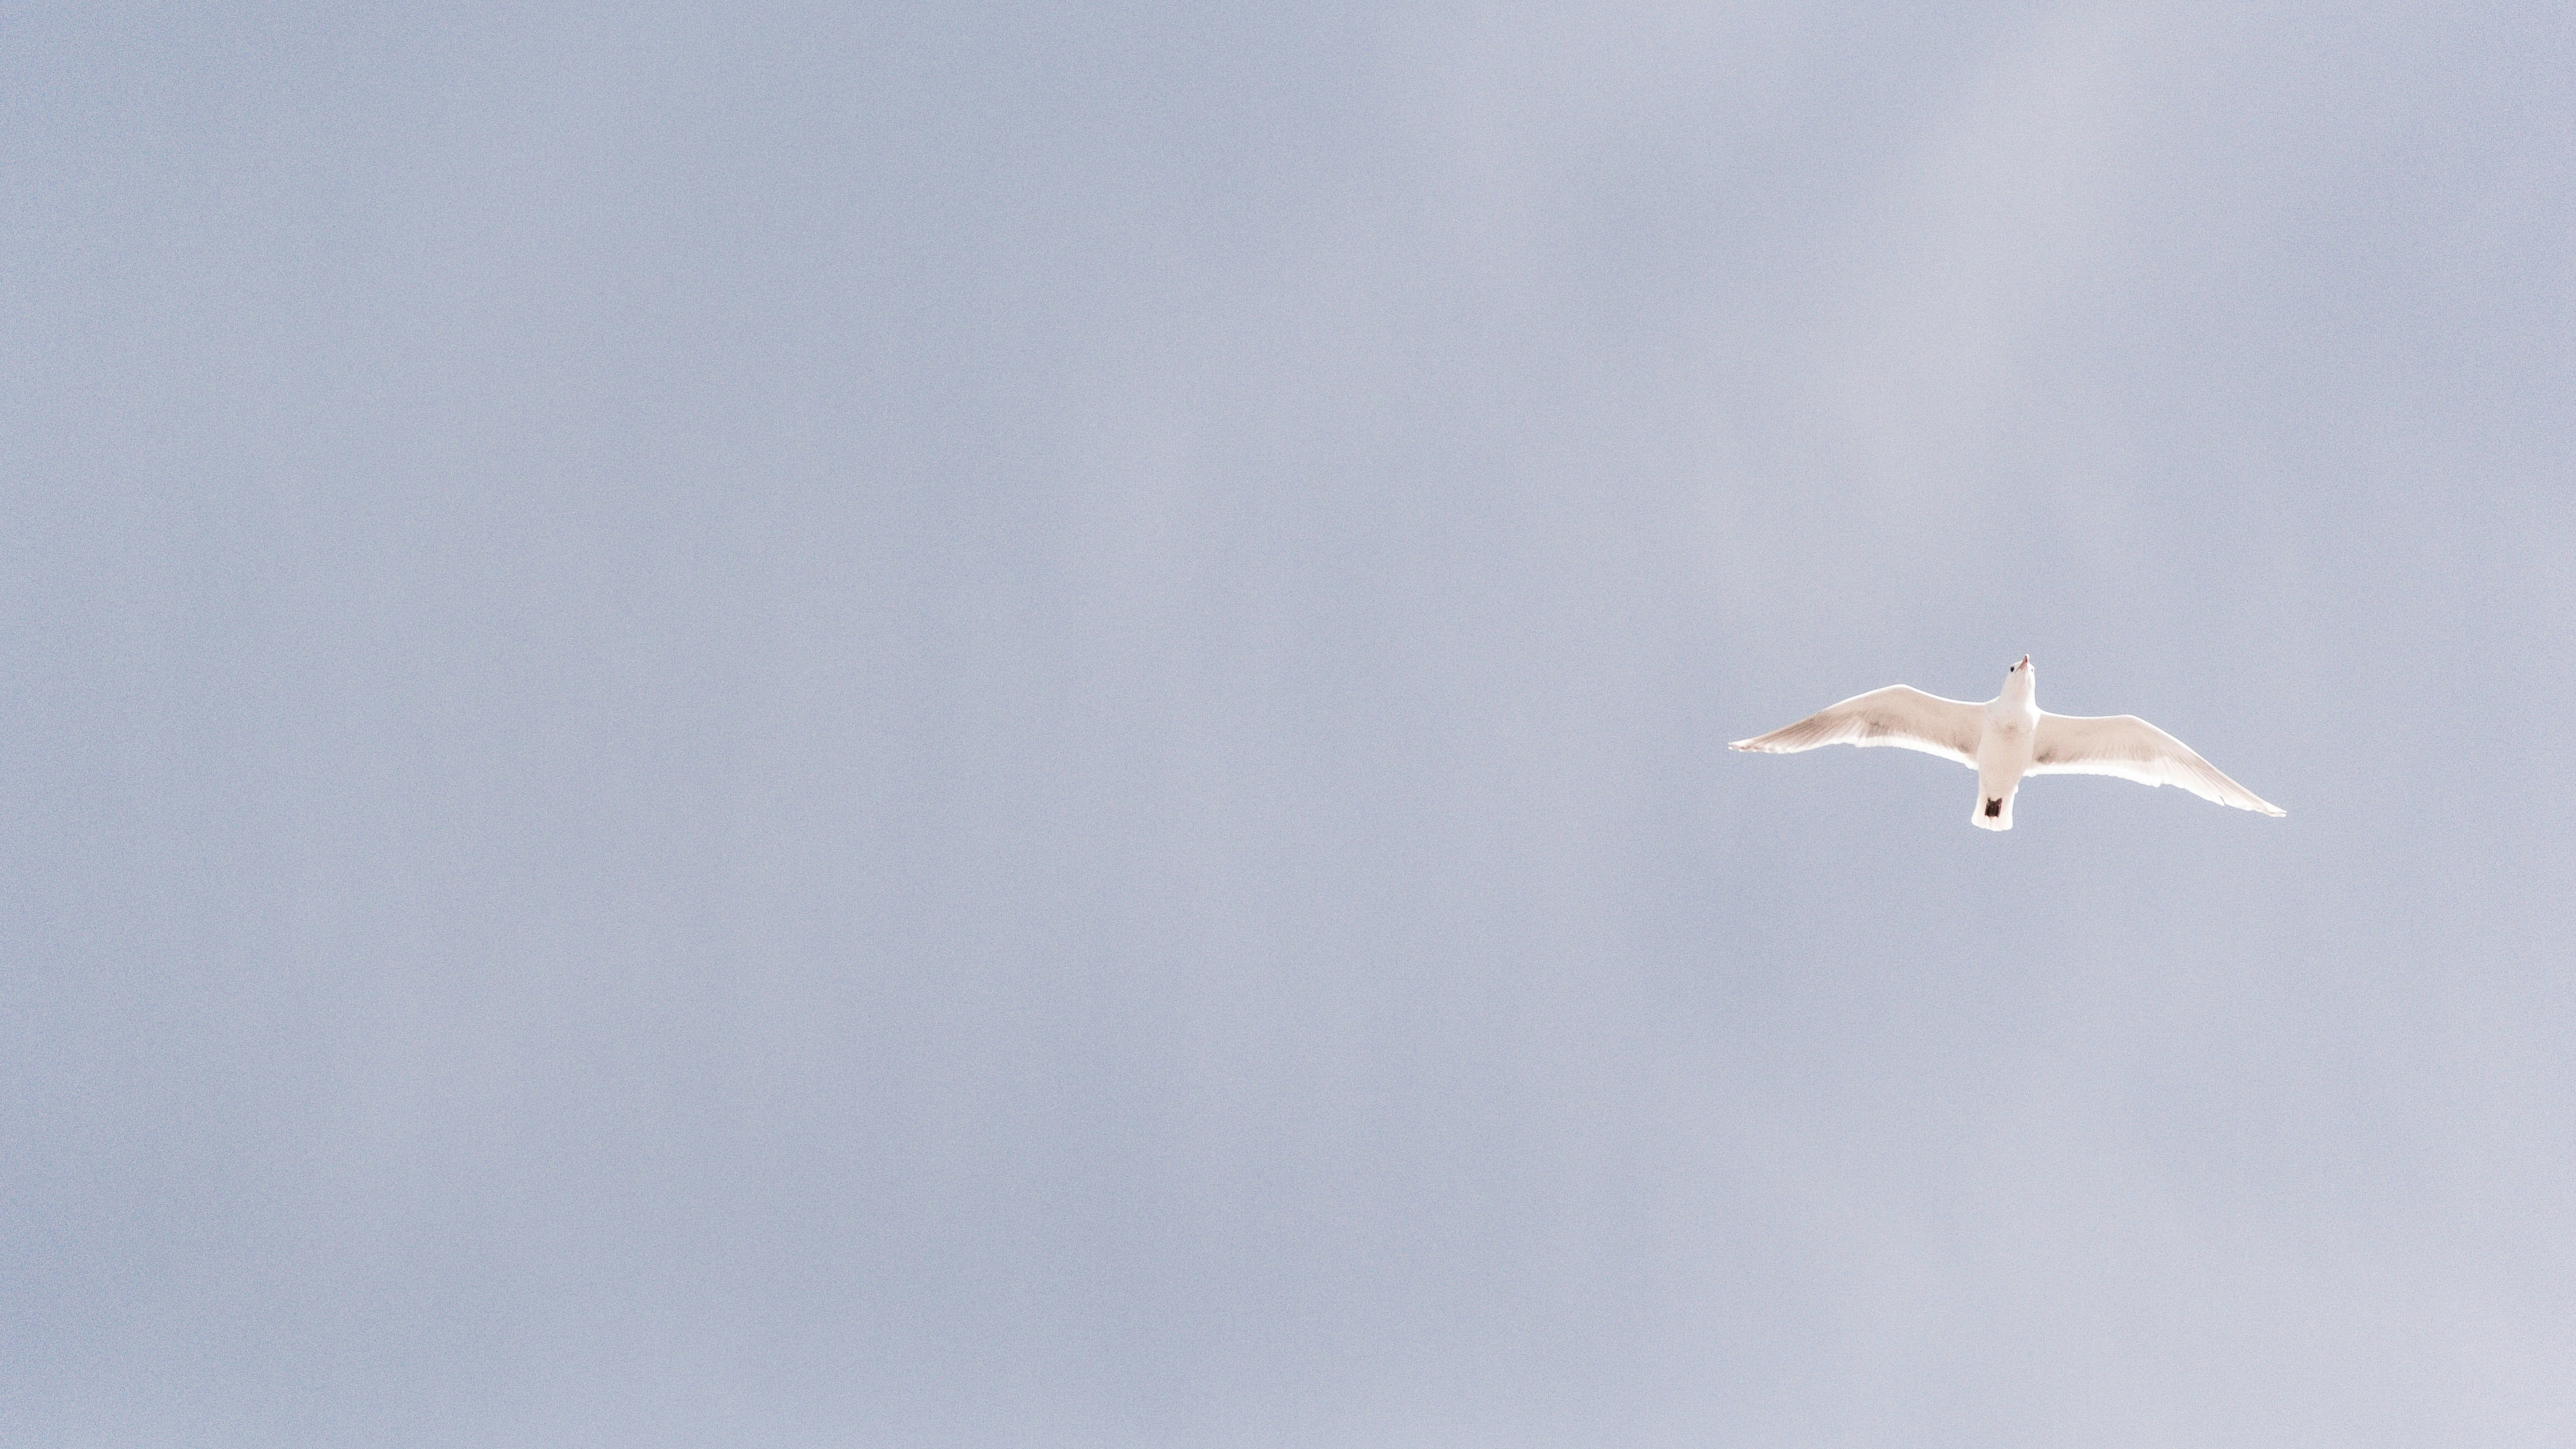 A seagull in flight against a gray sky